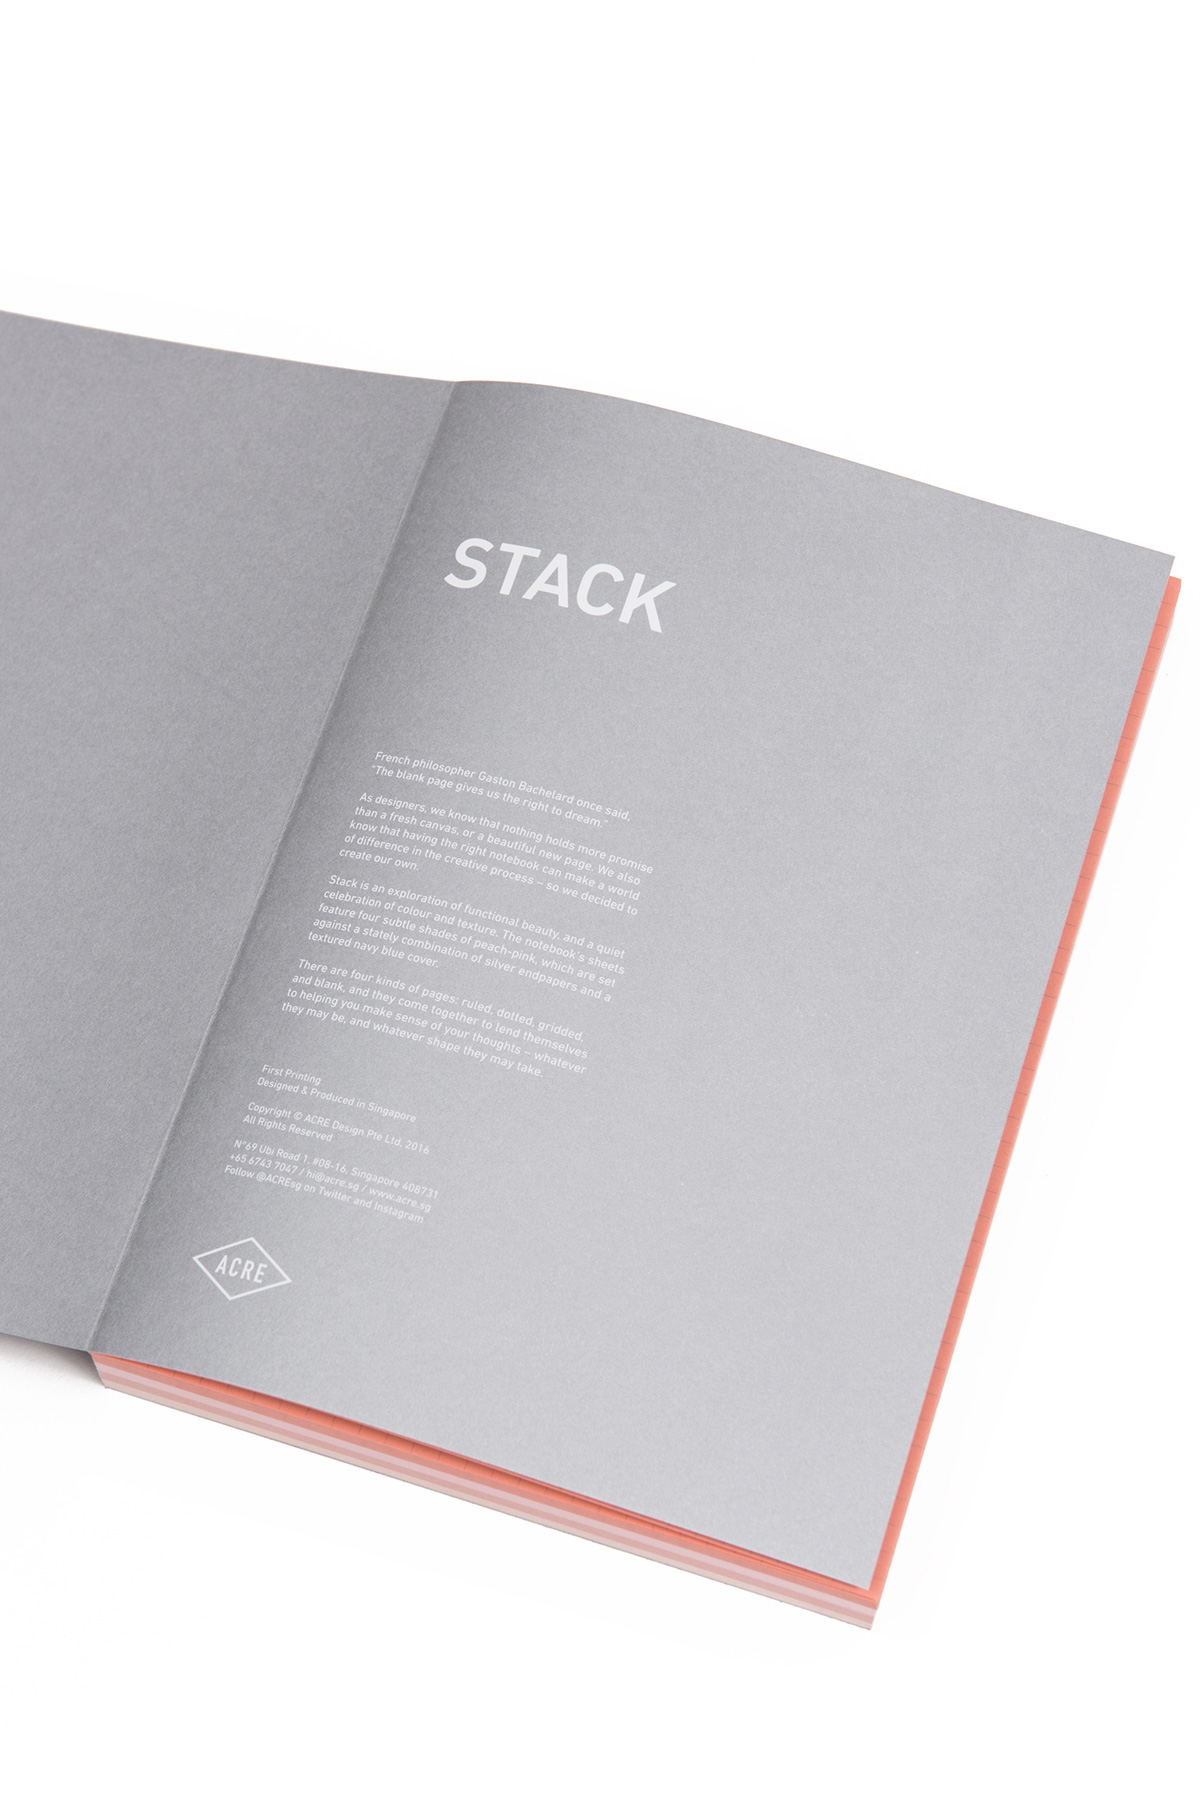 Stack Notebook Design